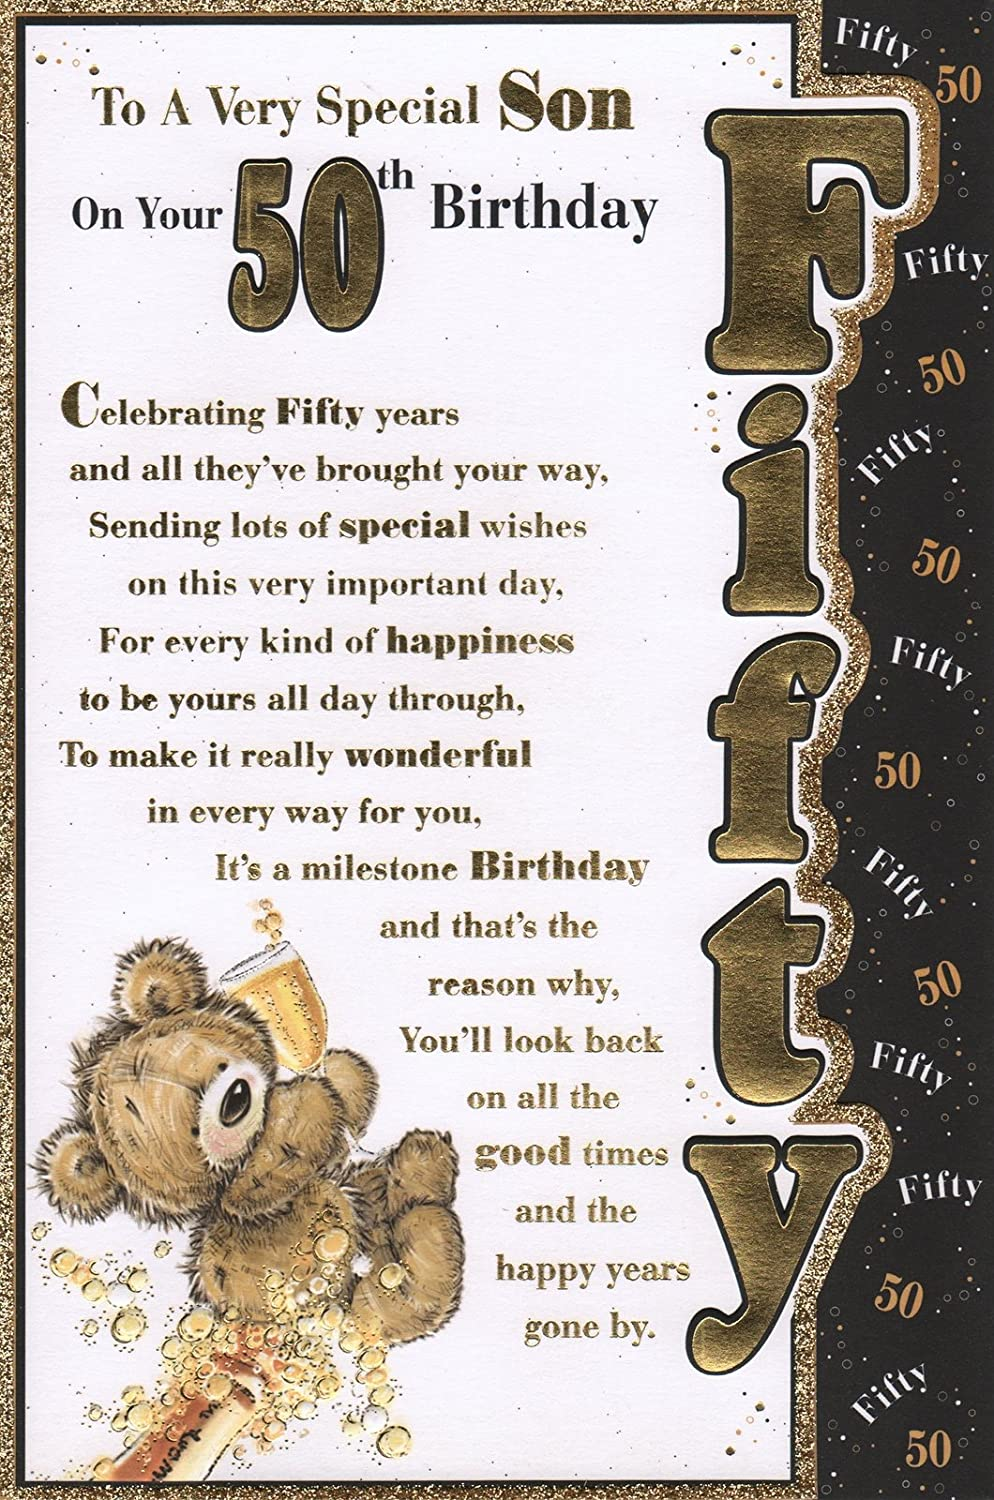 Sons 50th birthday card to a very special son on your 50th sons 50th birthday card to a very special son on your 50th birthday great quality card amazon garden outdoors m4hsunfo